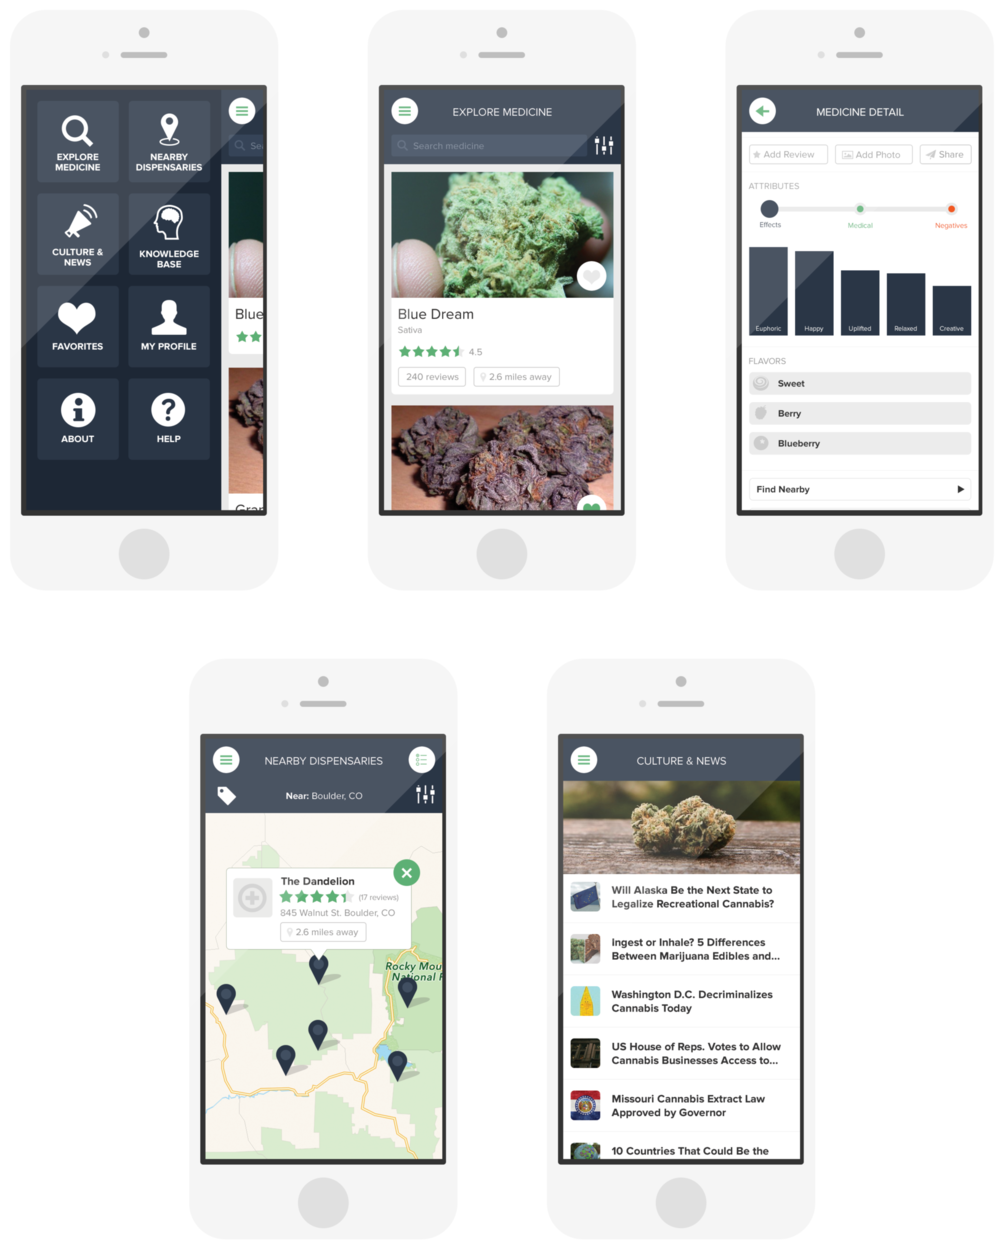 Whaxy - I did the UX and UI for Whaxy, which is a medical marijuana startup located in Colorado (surprise, surprise!). Users can review dispensaries, view medicine available, leave ratings, sophisticated reviews and even contribute their own photos.